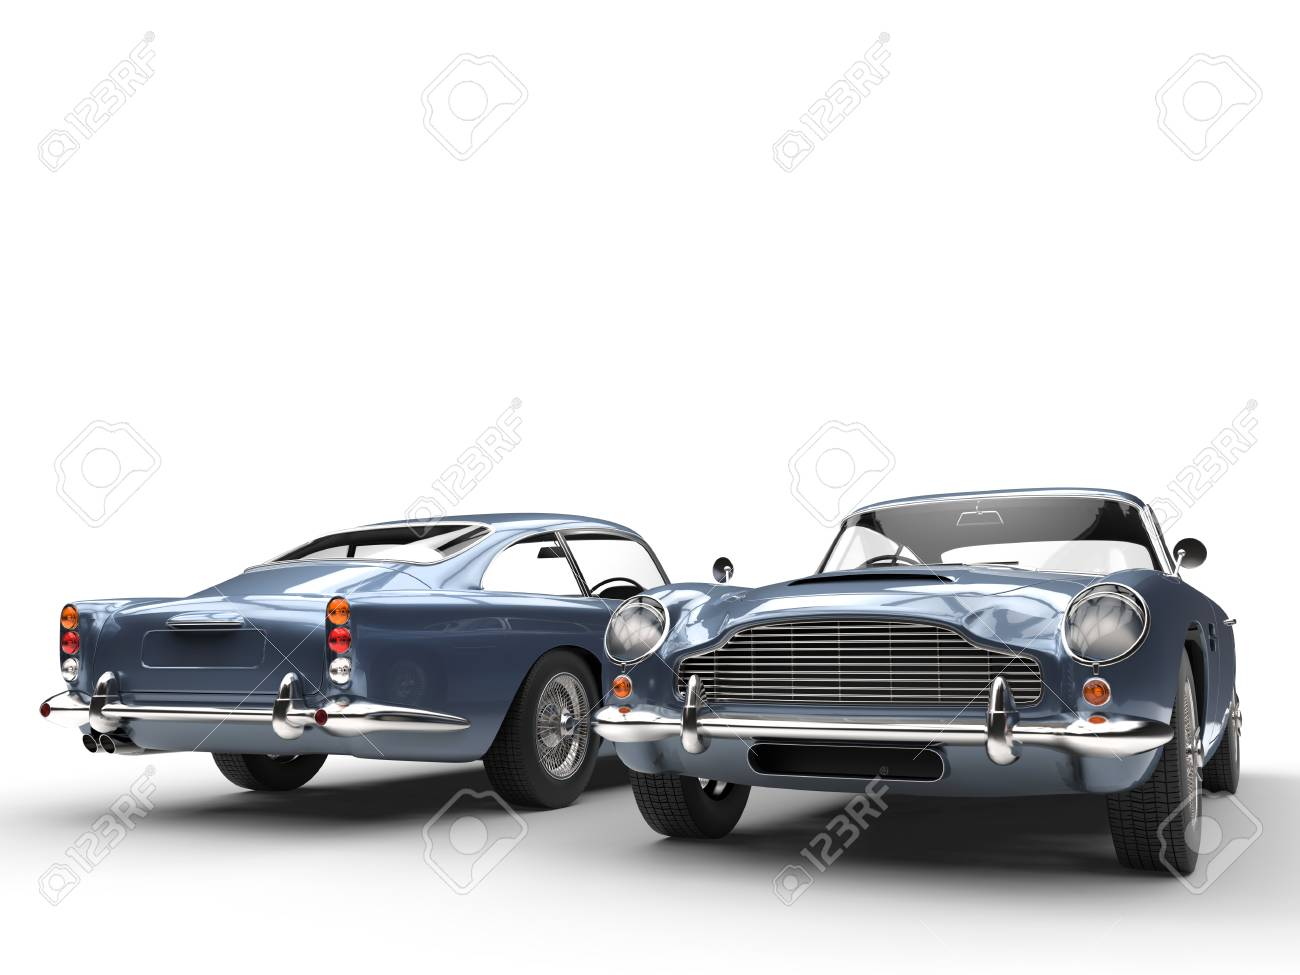 Light Blue Classic Vintage Cars   Front And Back View Stock Photo   54730507